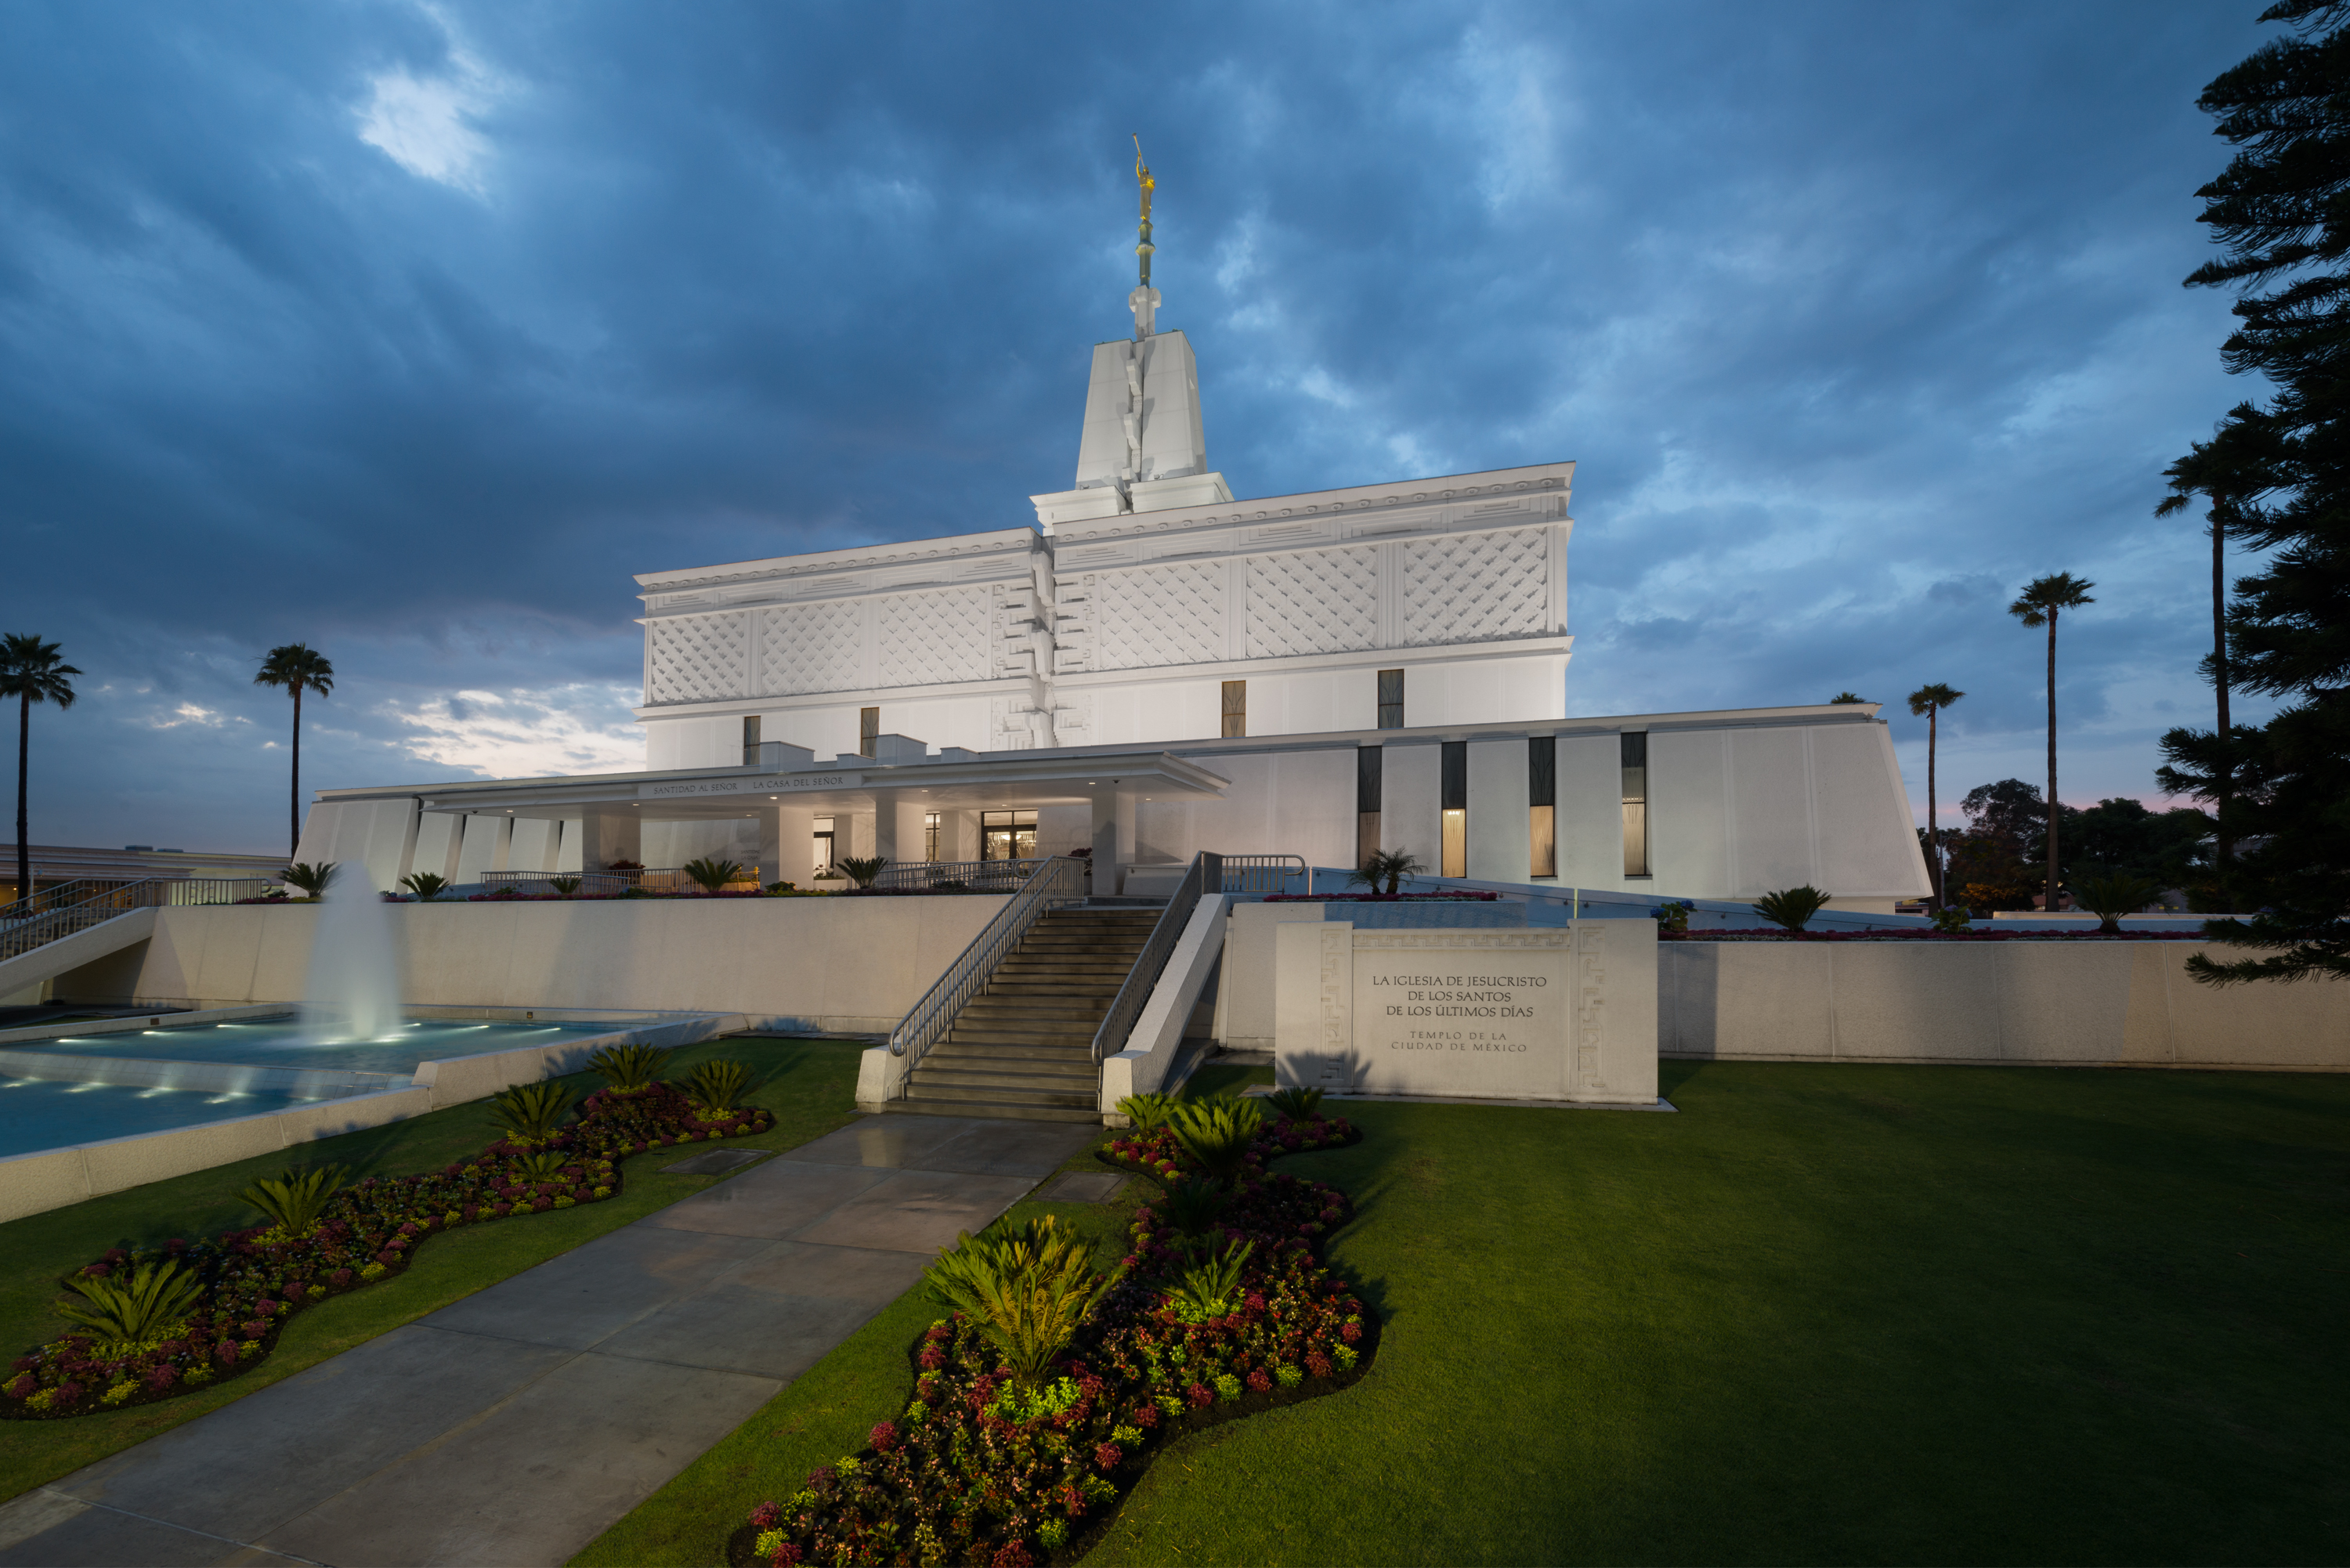 Dedicated in 1983, the Mexico City Mexico Temple was the nation's first temple. It will be rededicated on Sept. 13, 2015, following a nearly two year renovation period.